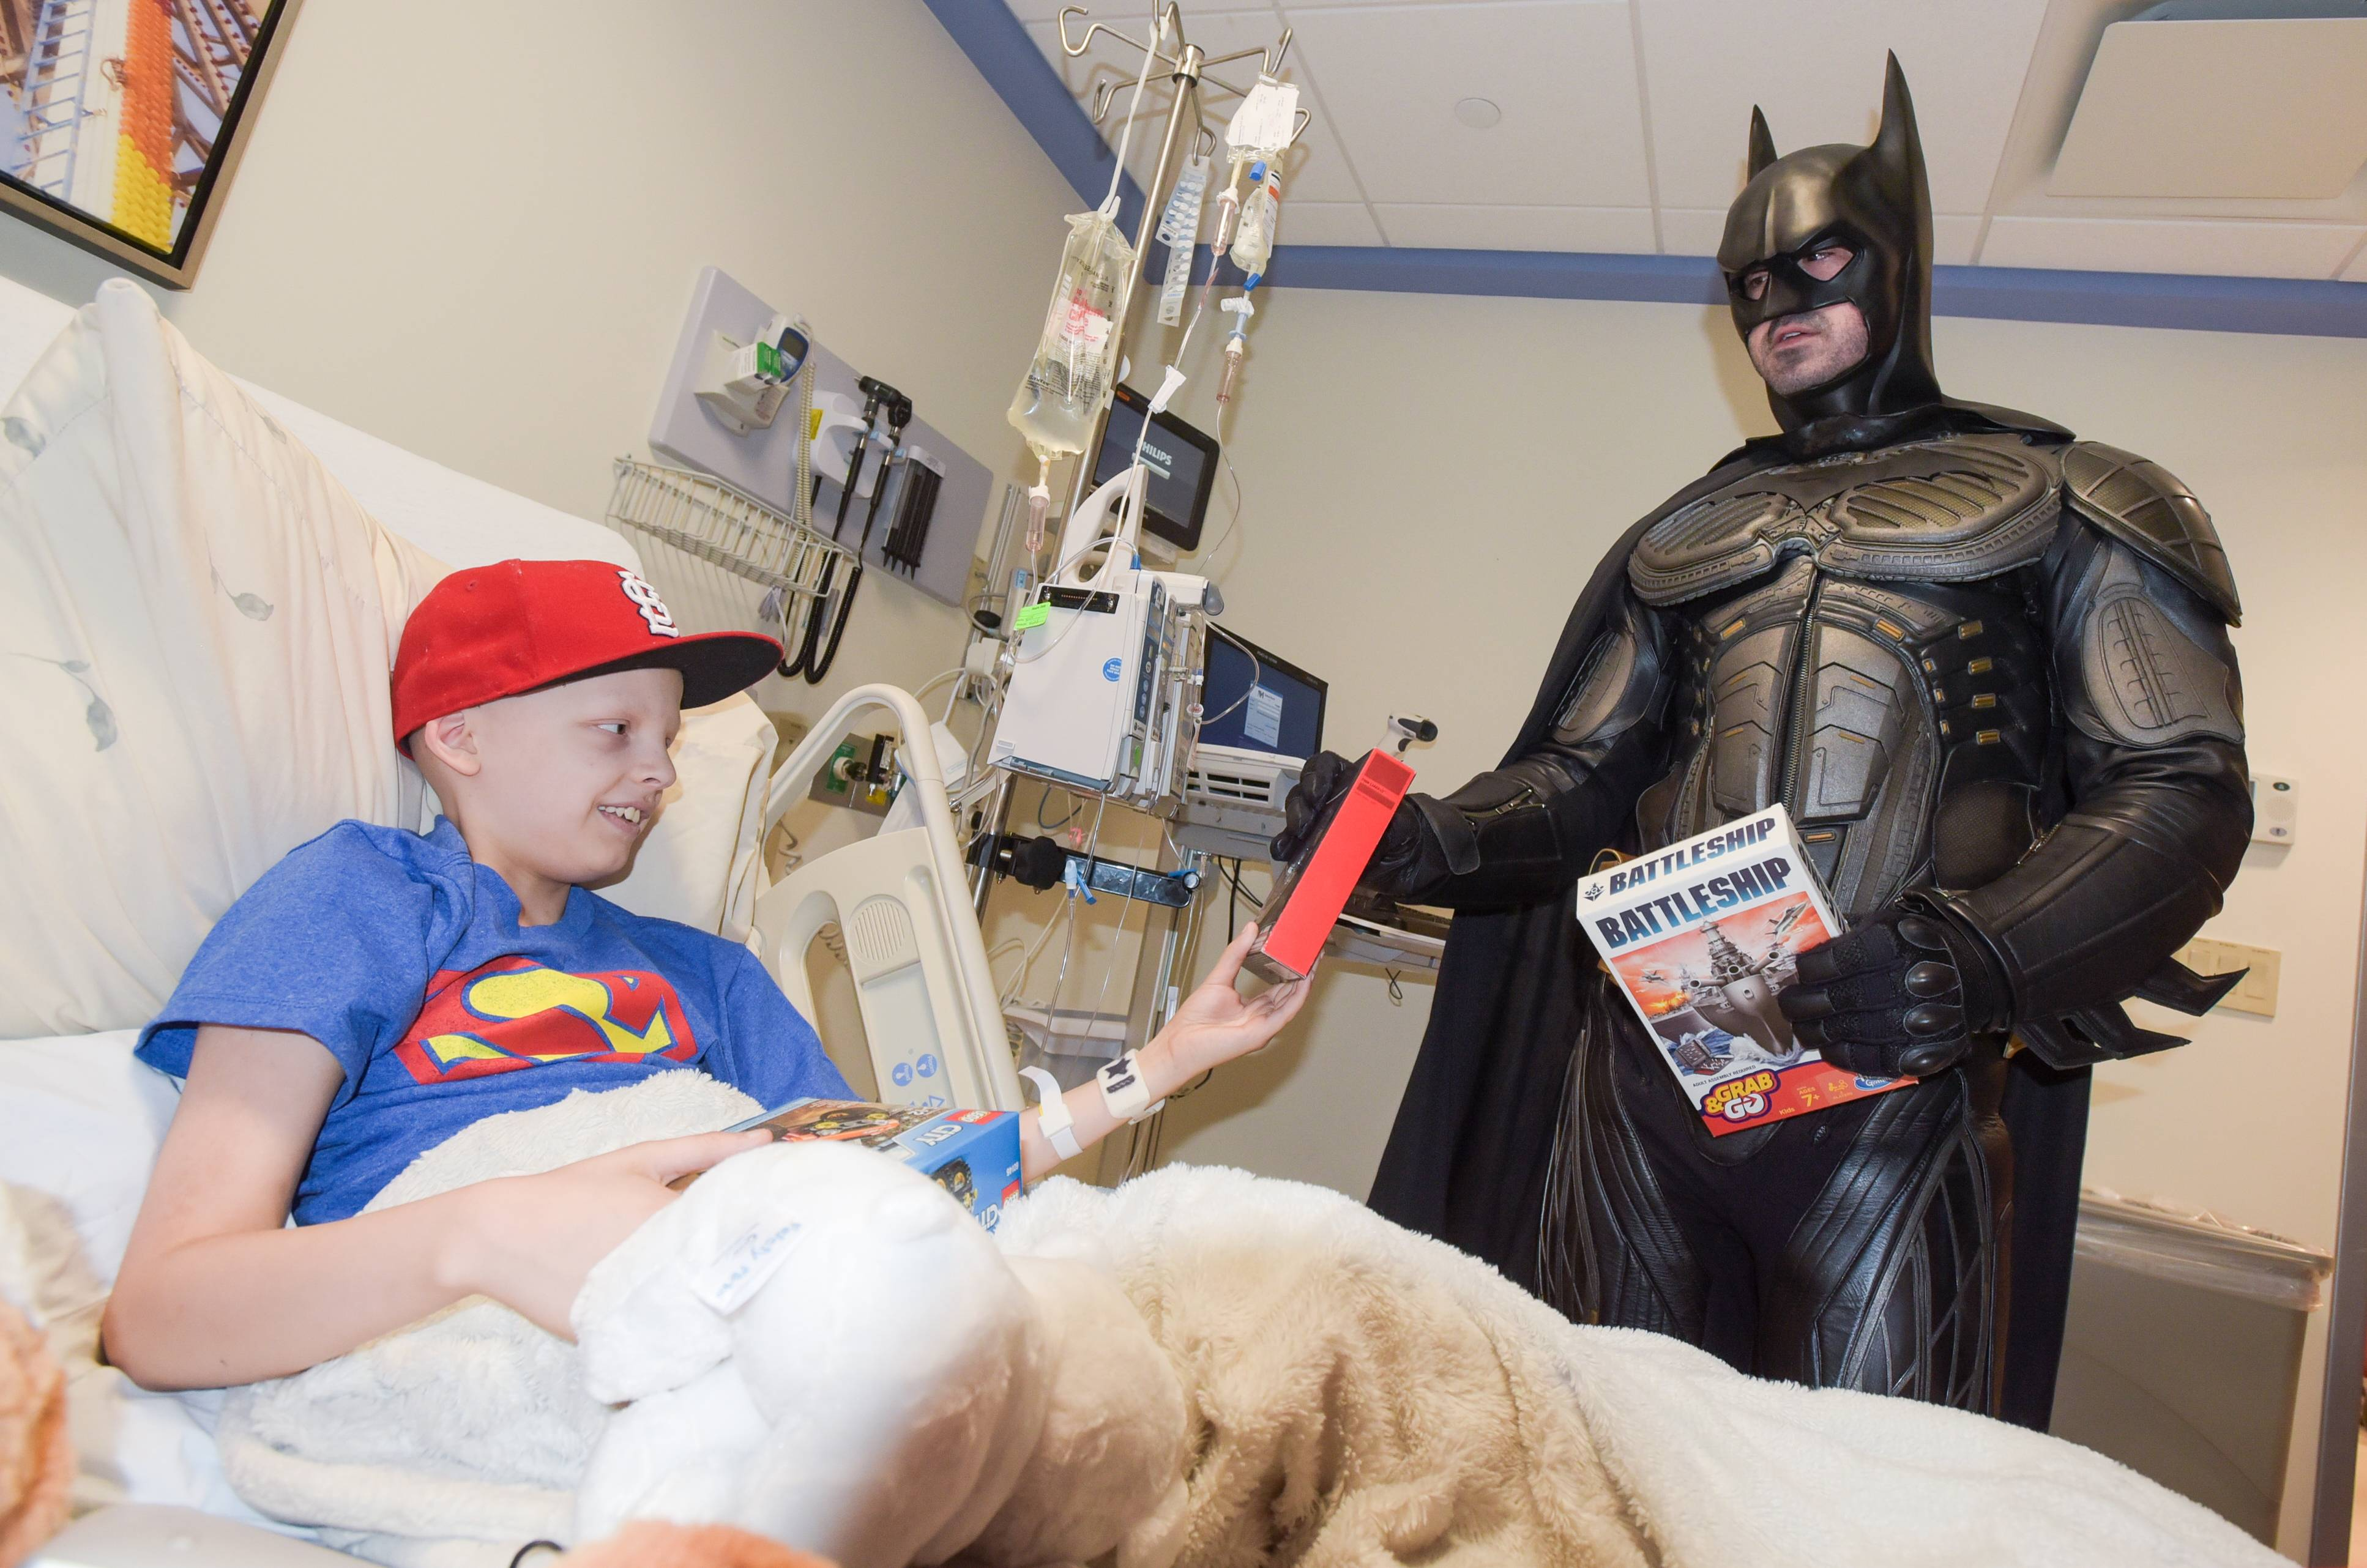 On Superhero Day at Winfield hospital, sick kids are the 'true heroes'